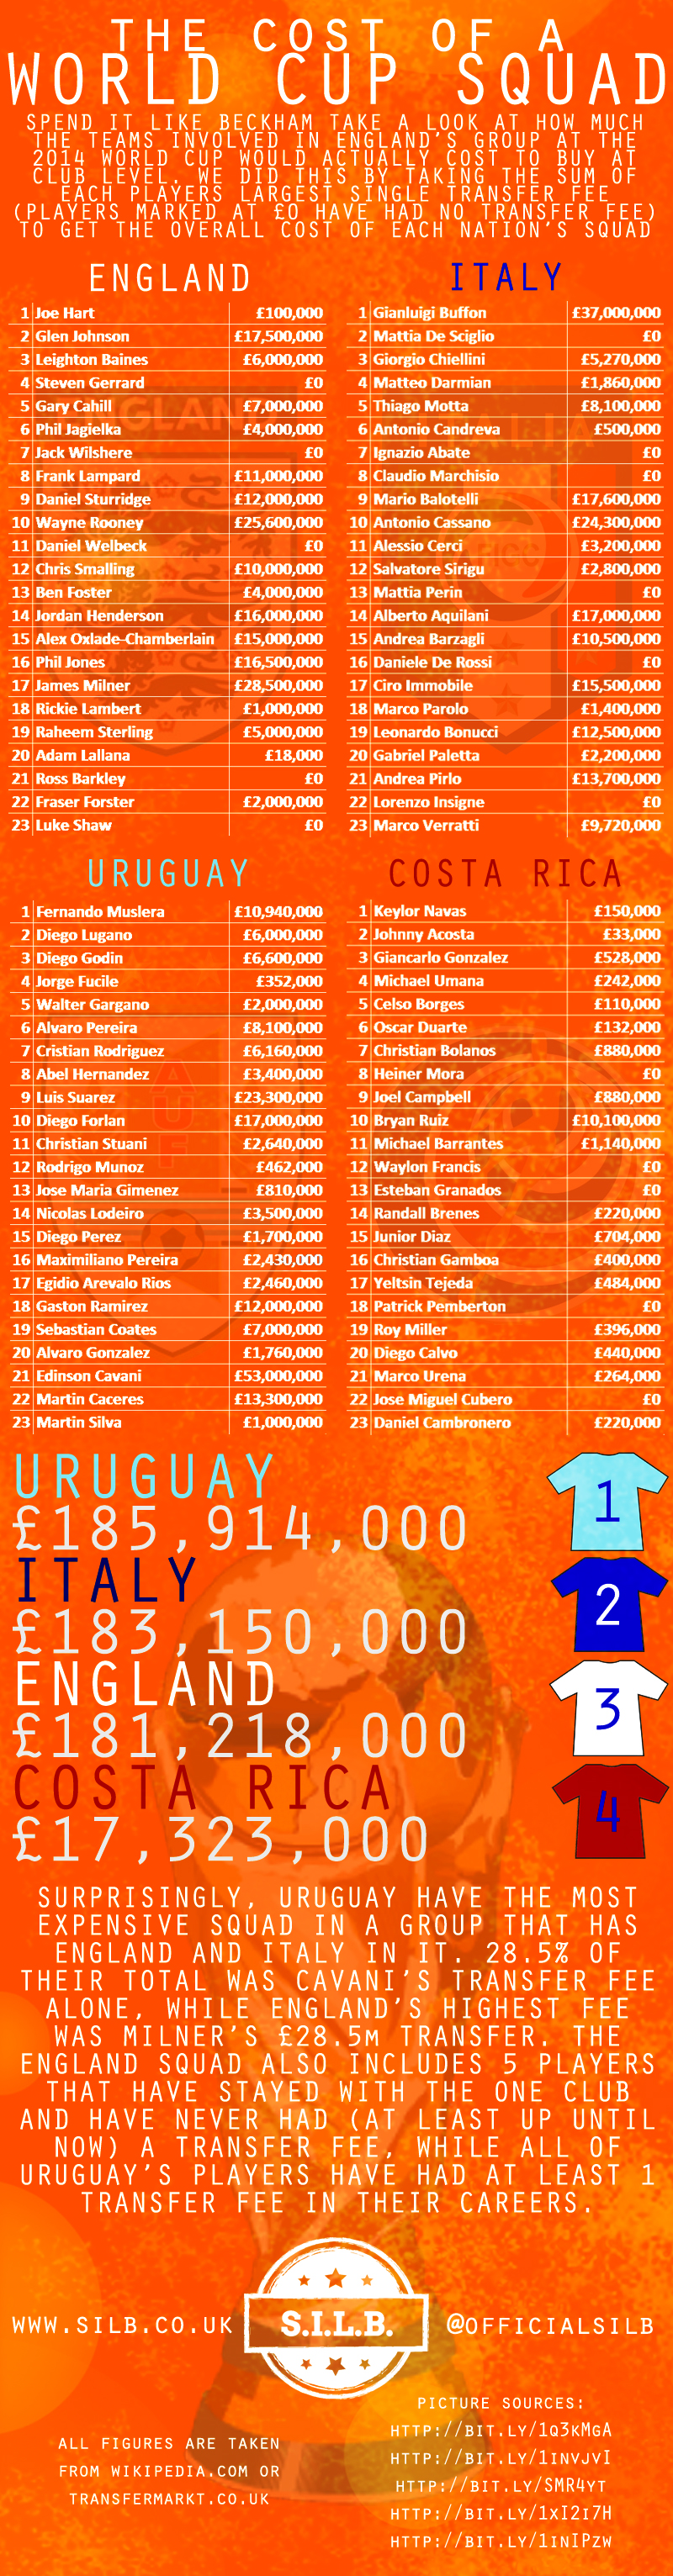 Spend It Like Beckham - The Cost of a World Cup Squad infographic